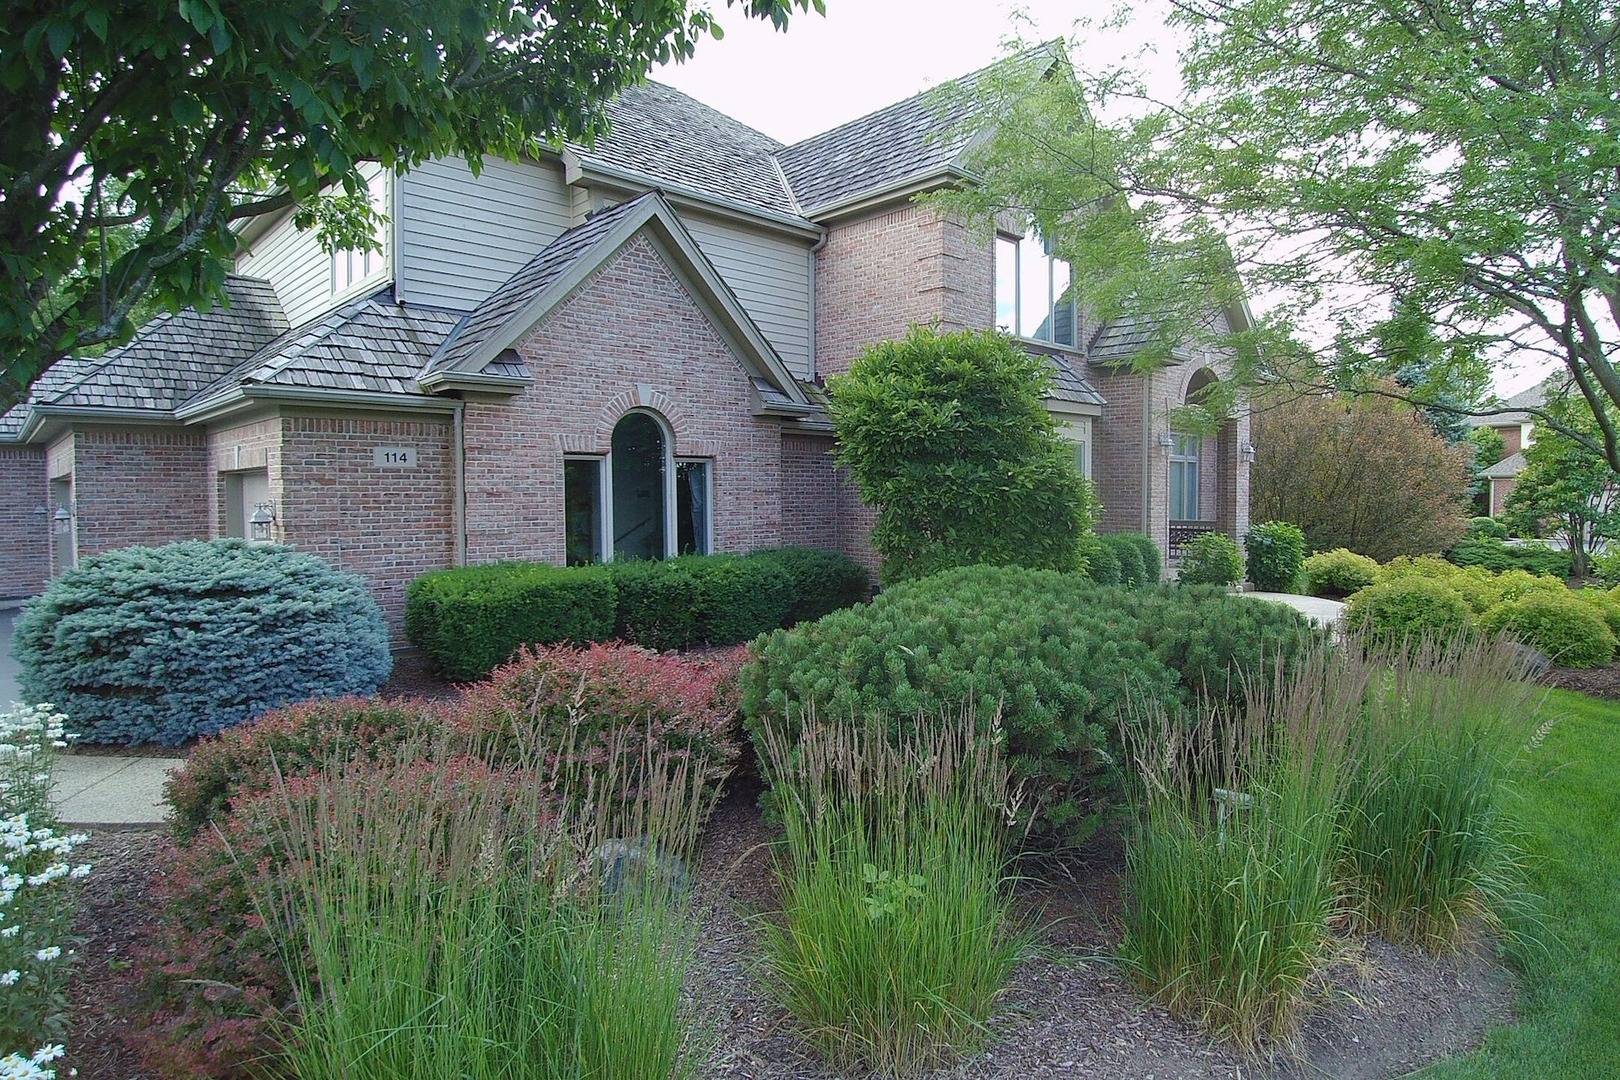 114 Governors Way, HAWTHORN WOODS, IL 60047